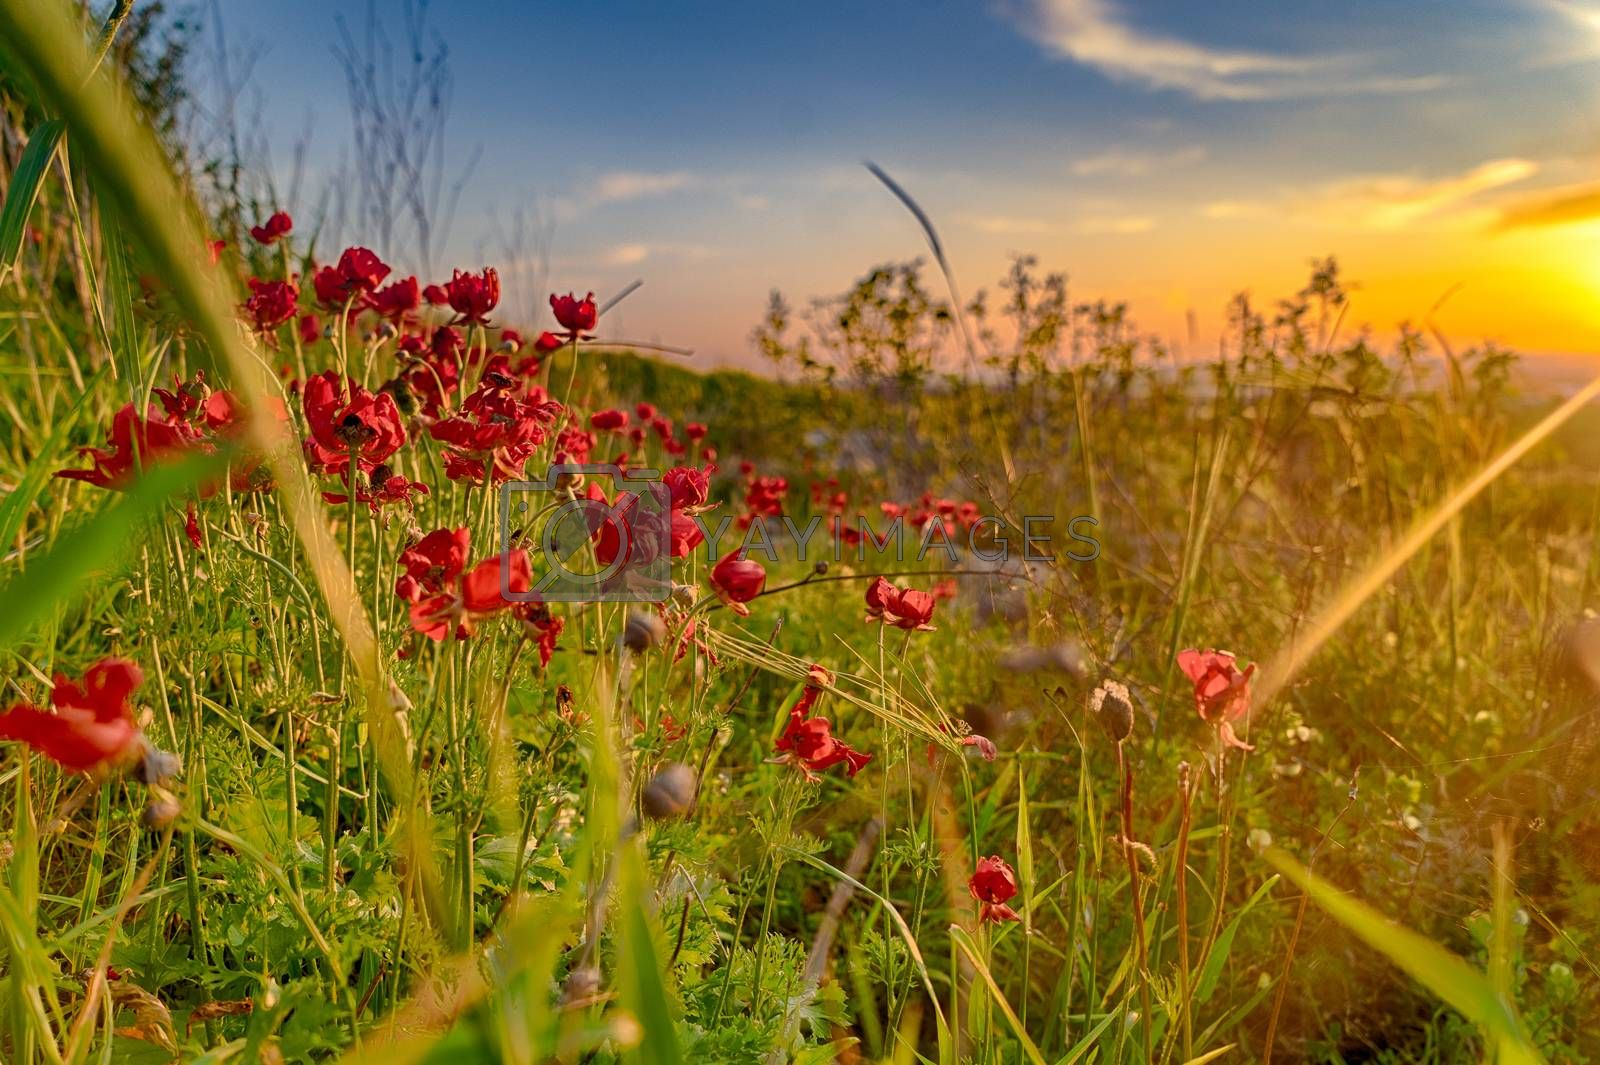 Spring sunset in nature landscape view by javax